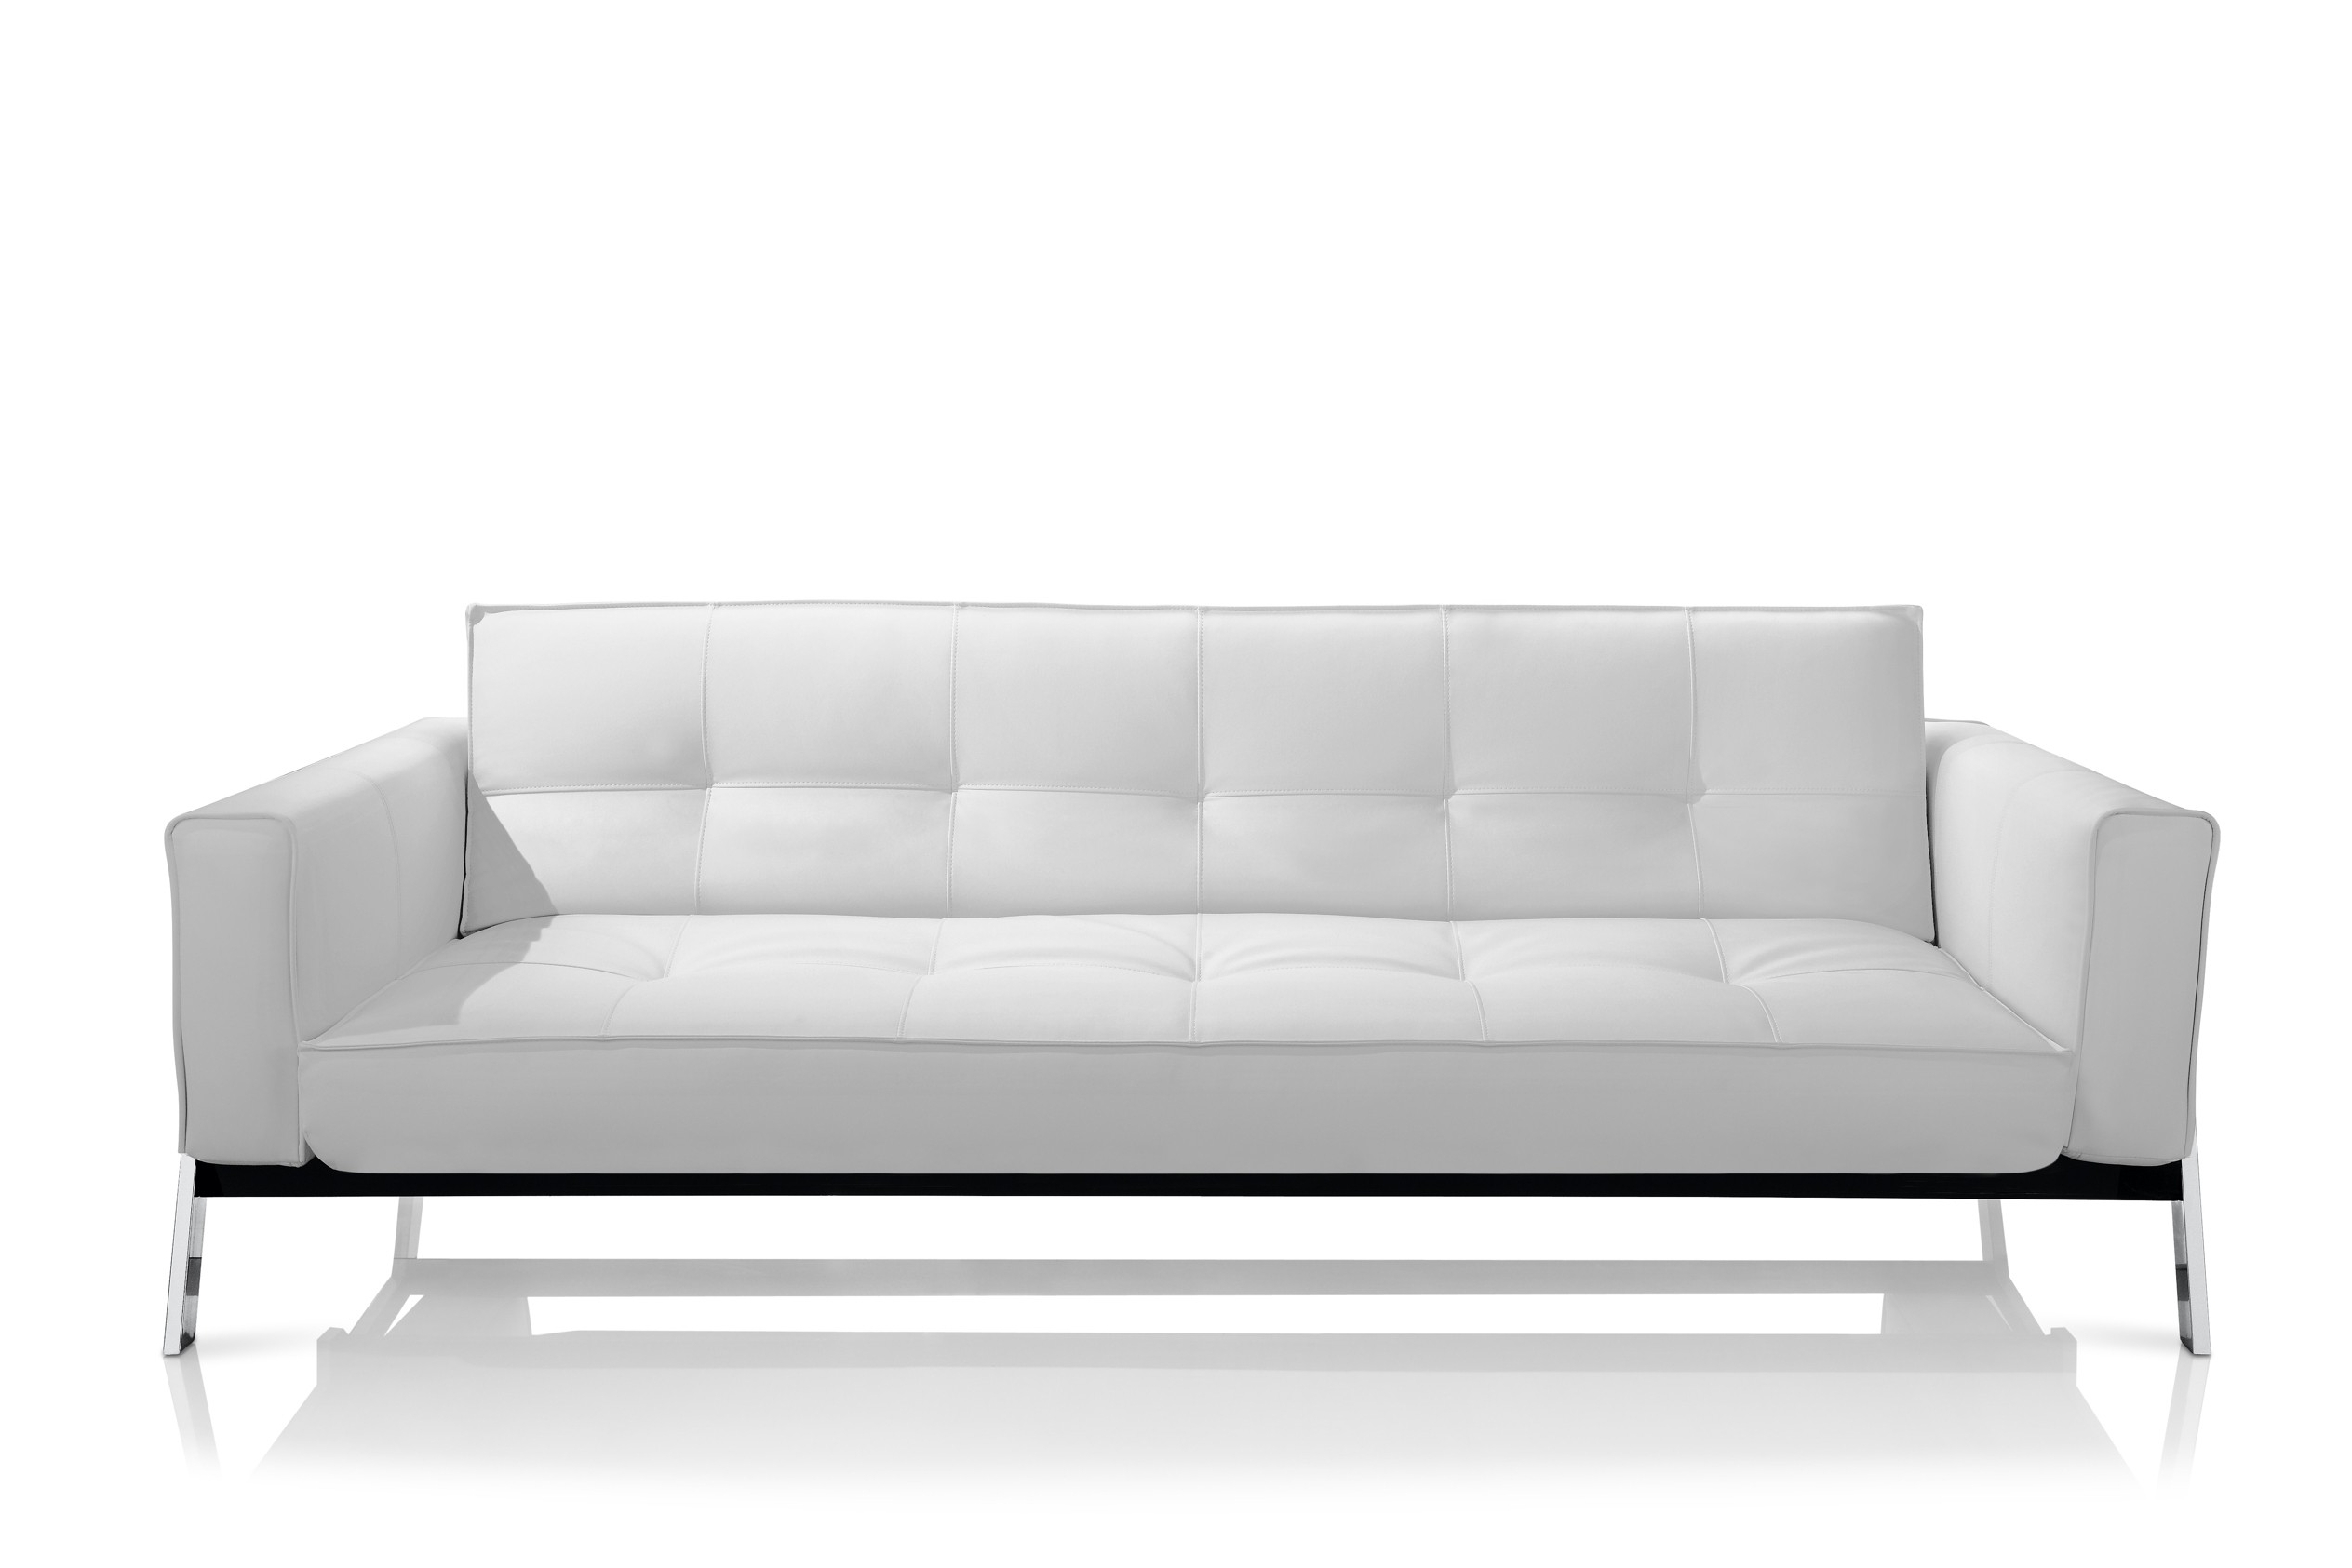 2018 Contemporary Sofa Chairs Intended For Chairs : Chairs Contemporary Sofa Covers Beds Slipcovers For (View 1 of 20)